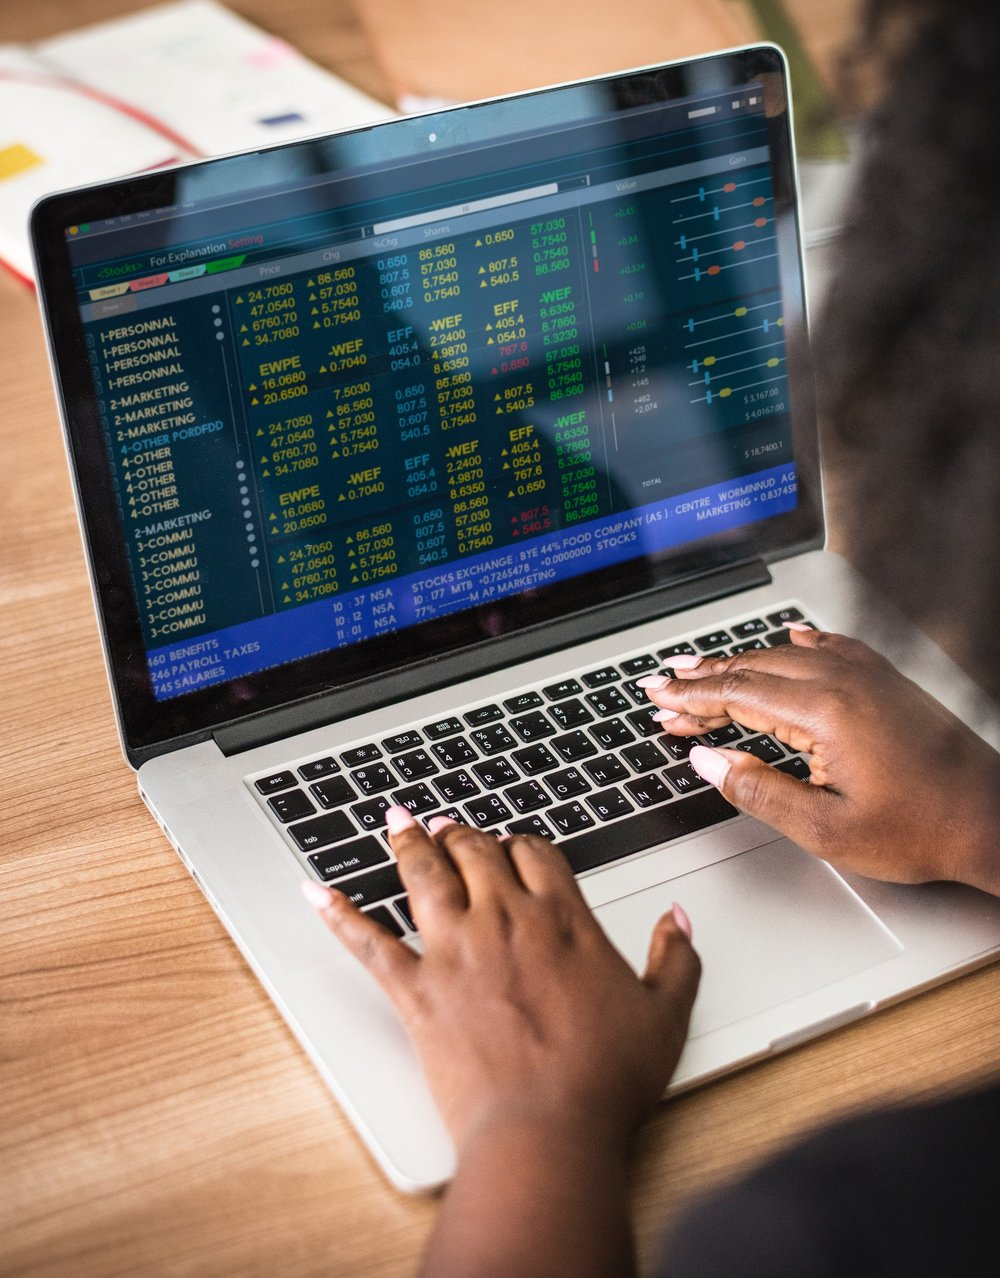 Use the free time you have during semestral breaks and vacation to start learning how to trade.